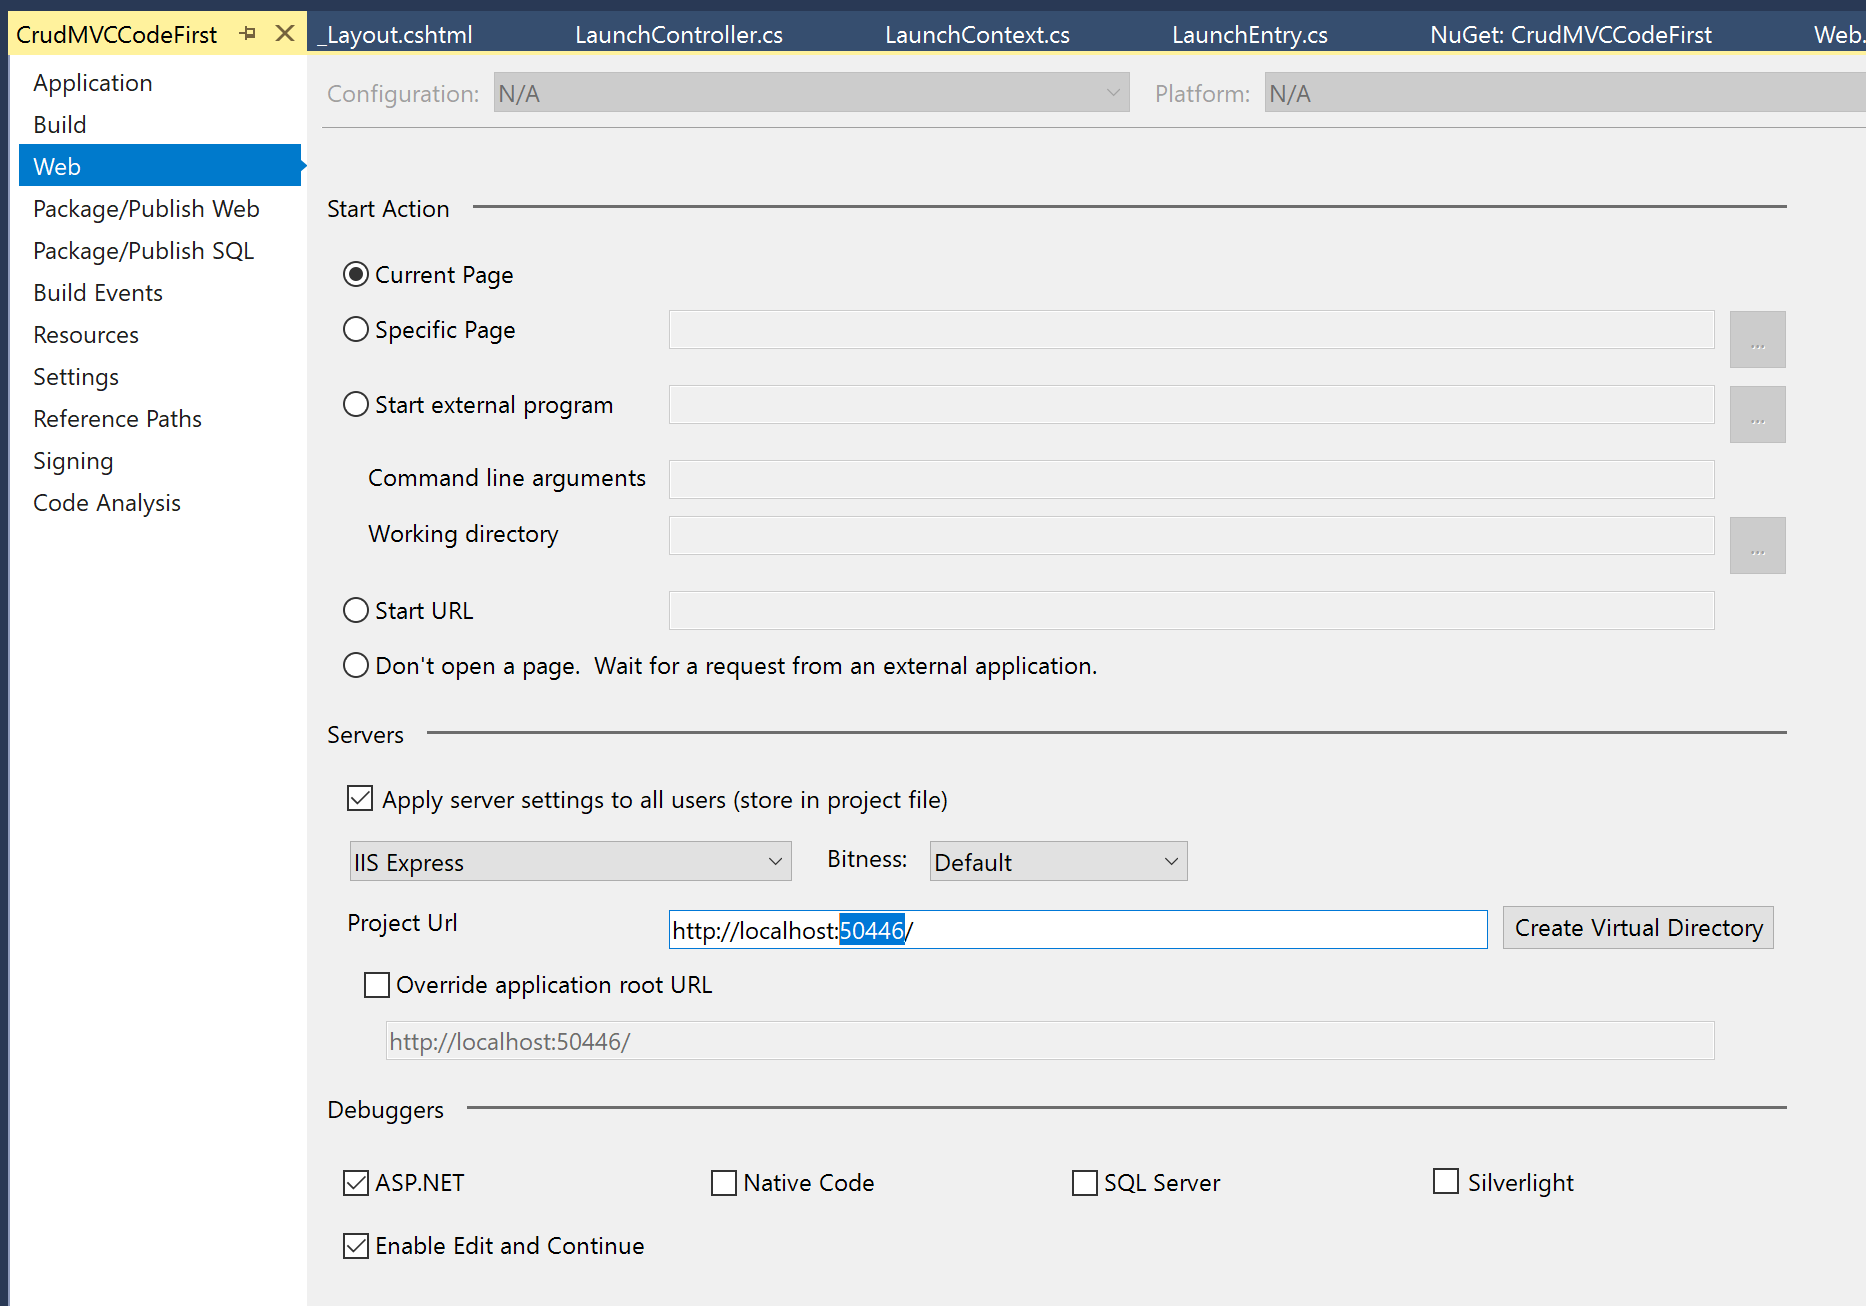 Visual Studio project settings URL